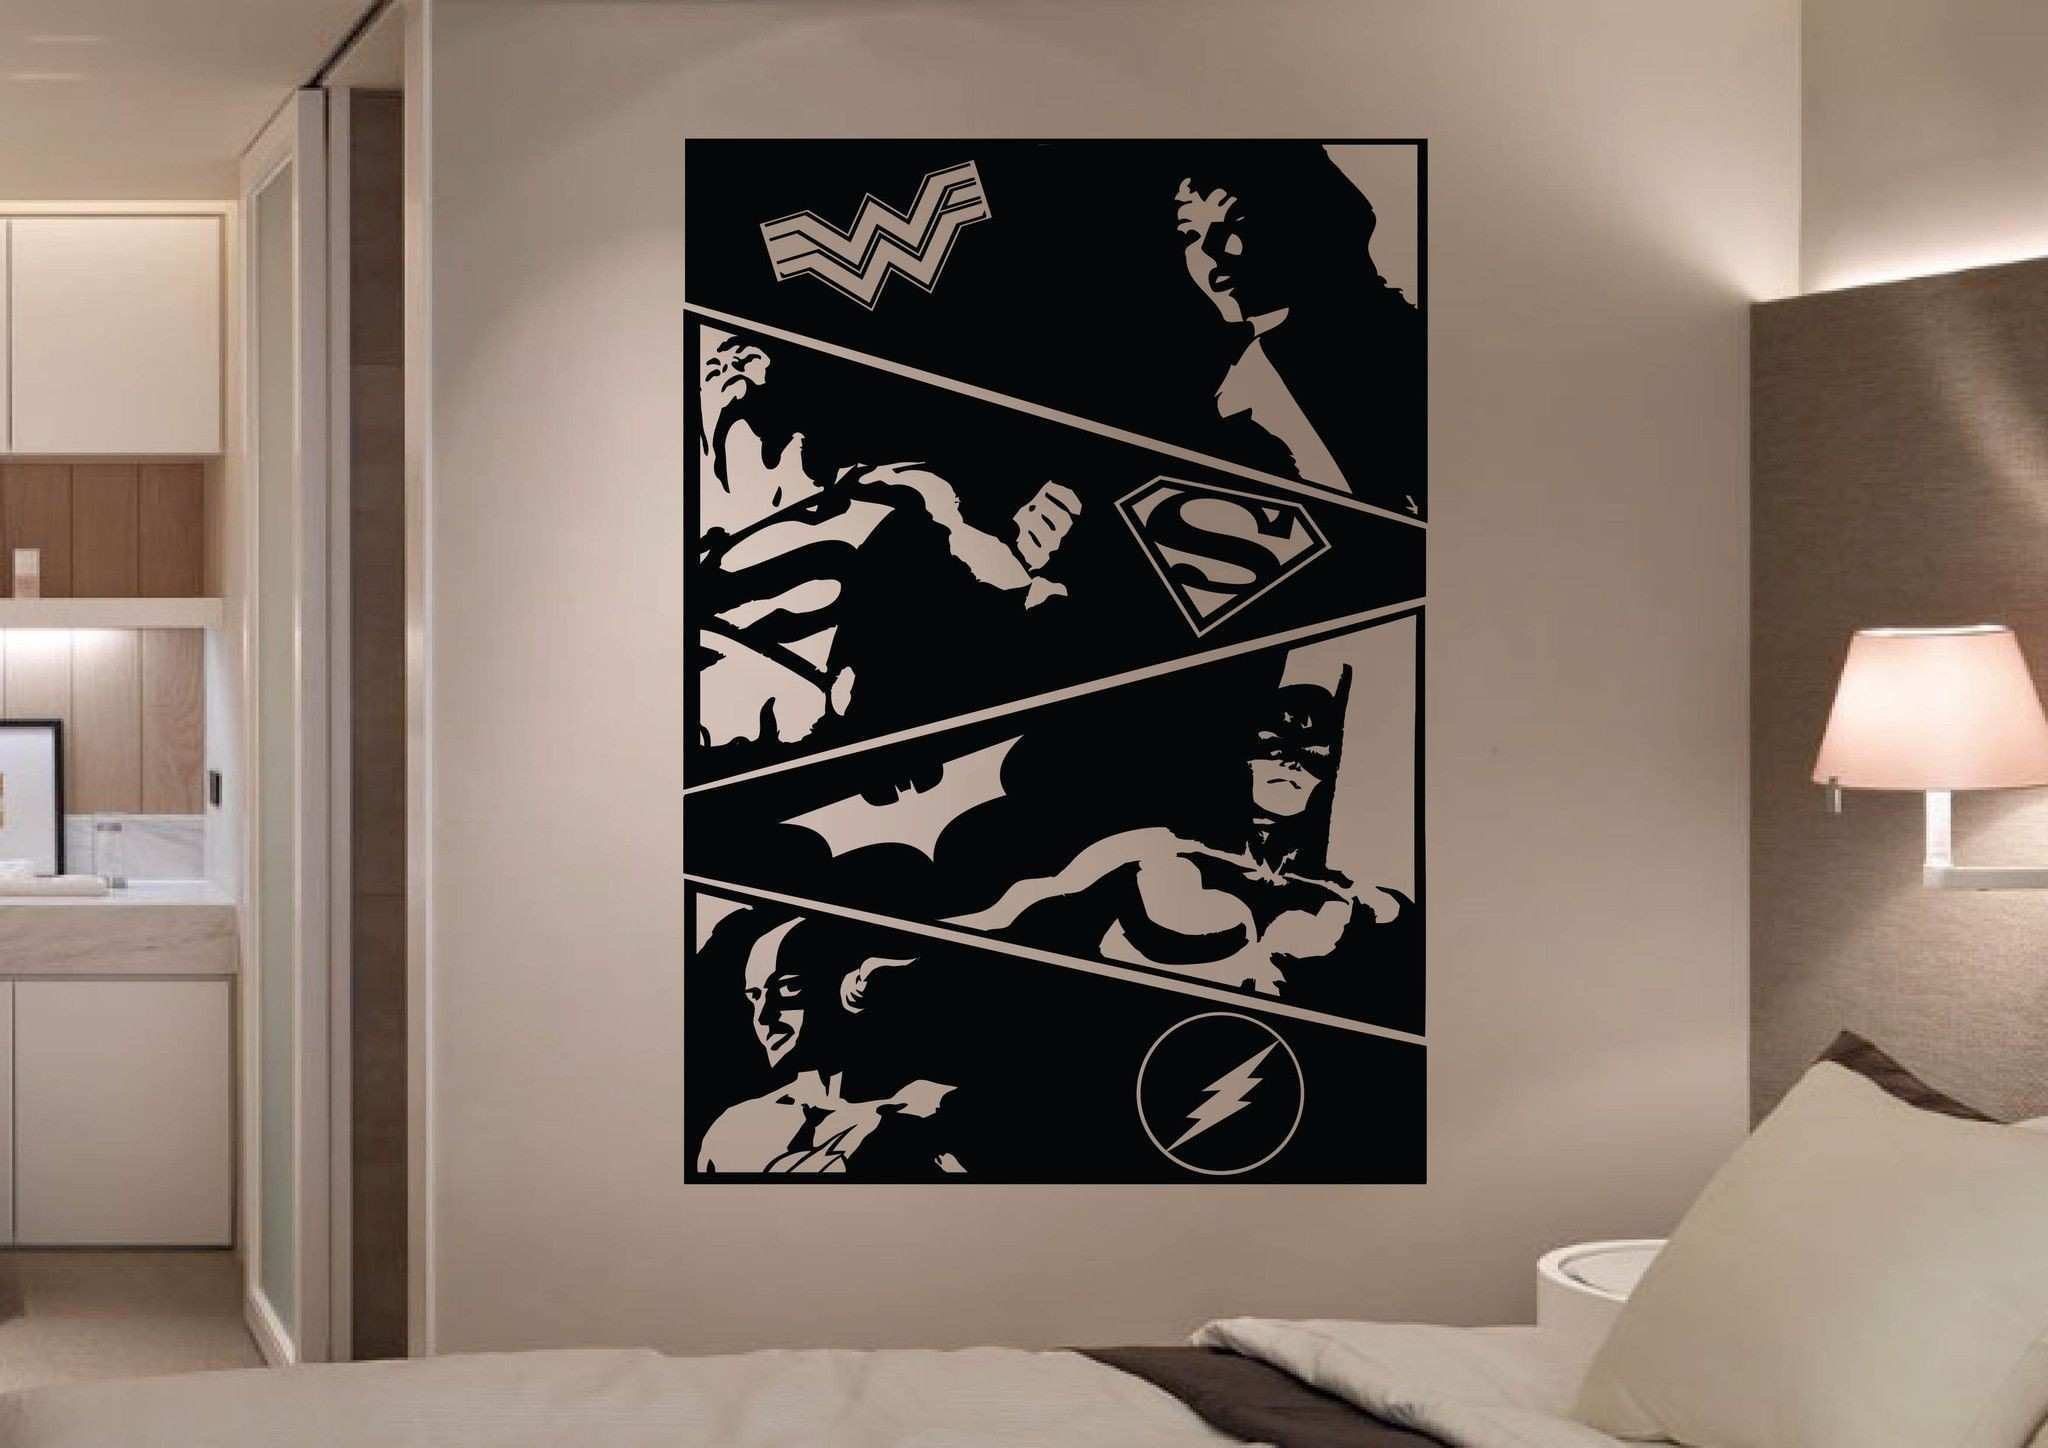 The Justice League ic Strip 4 Panel Wall Art Stickers is a simple